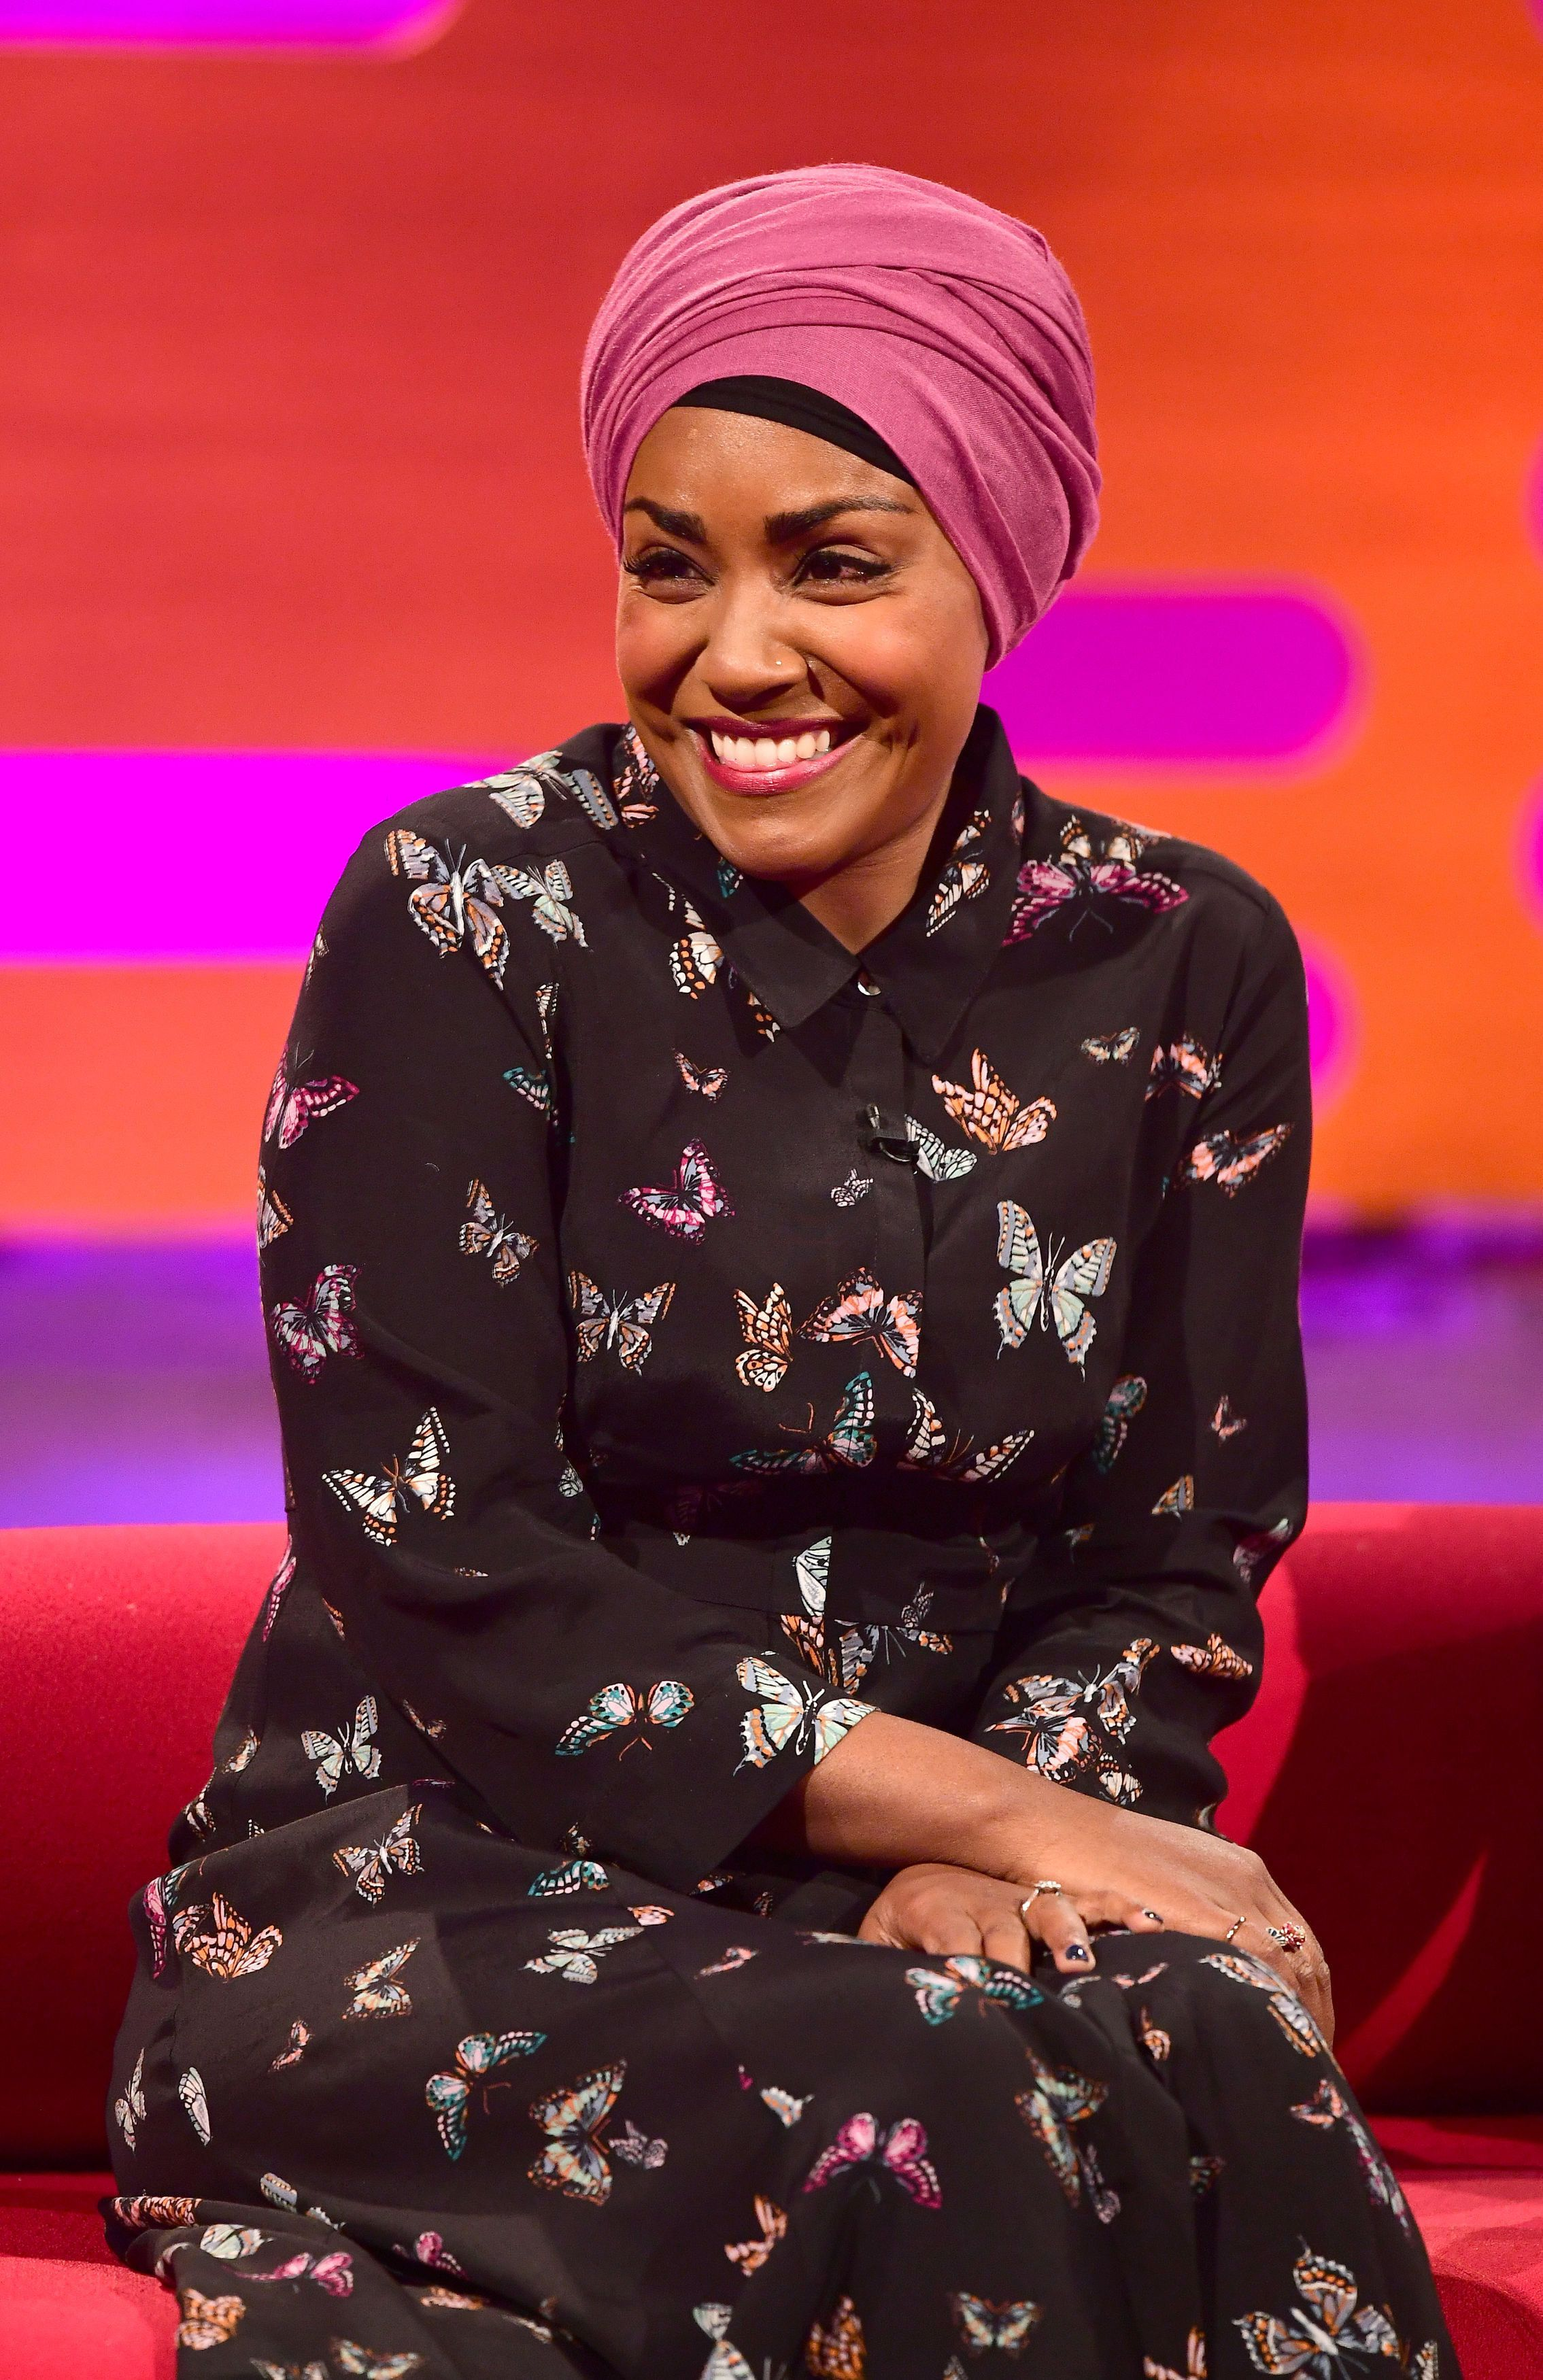 Nadiya Reveals She Won't Be Forcing Her Children Into Arranged